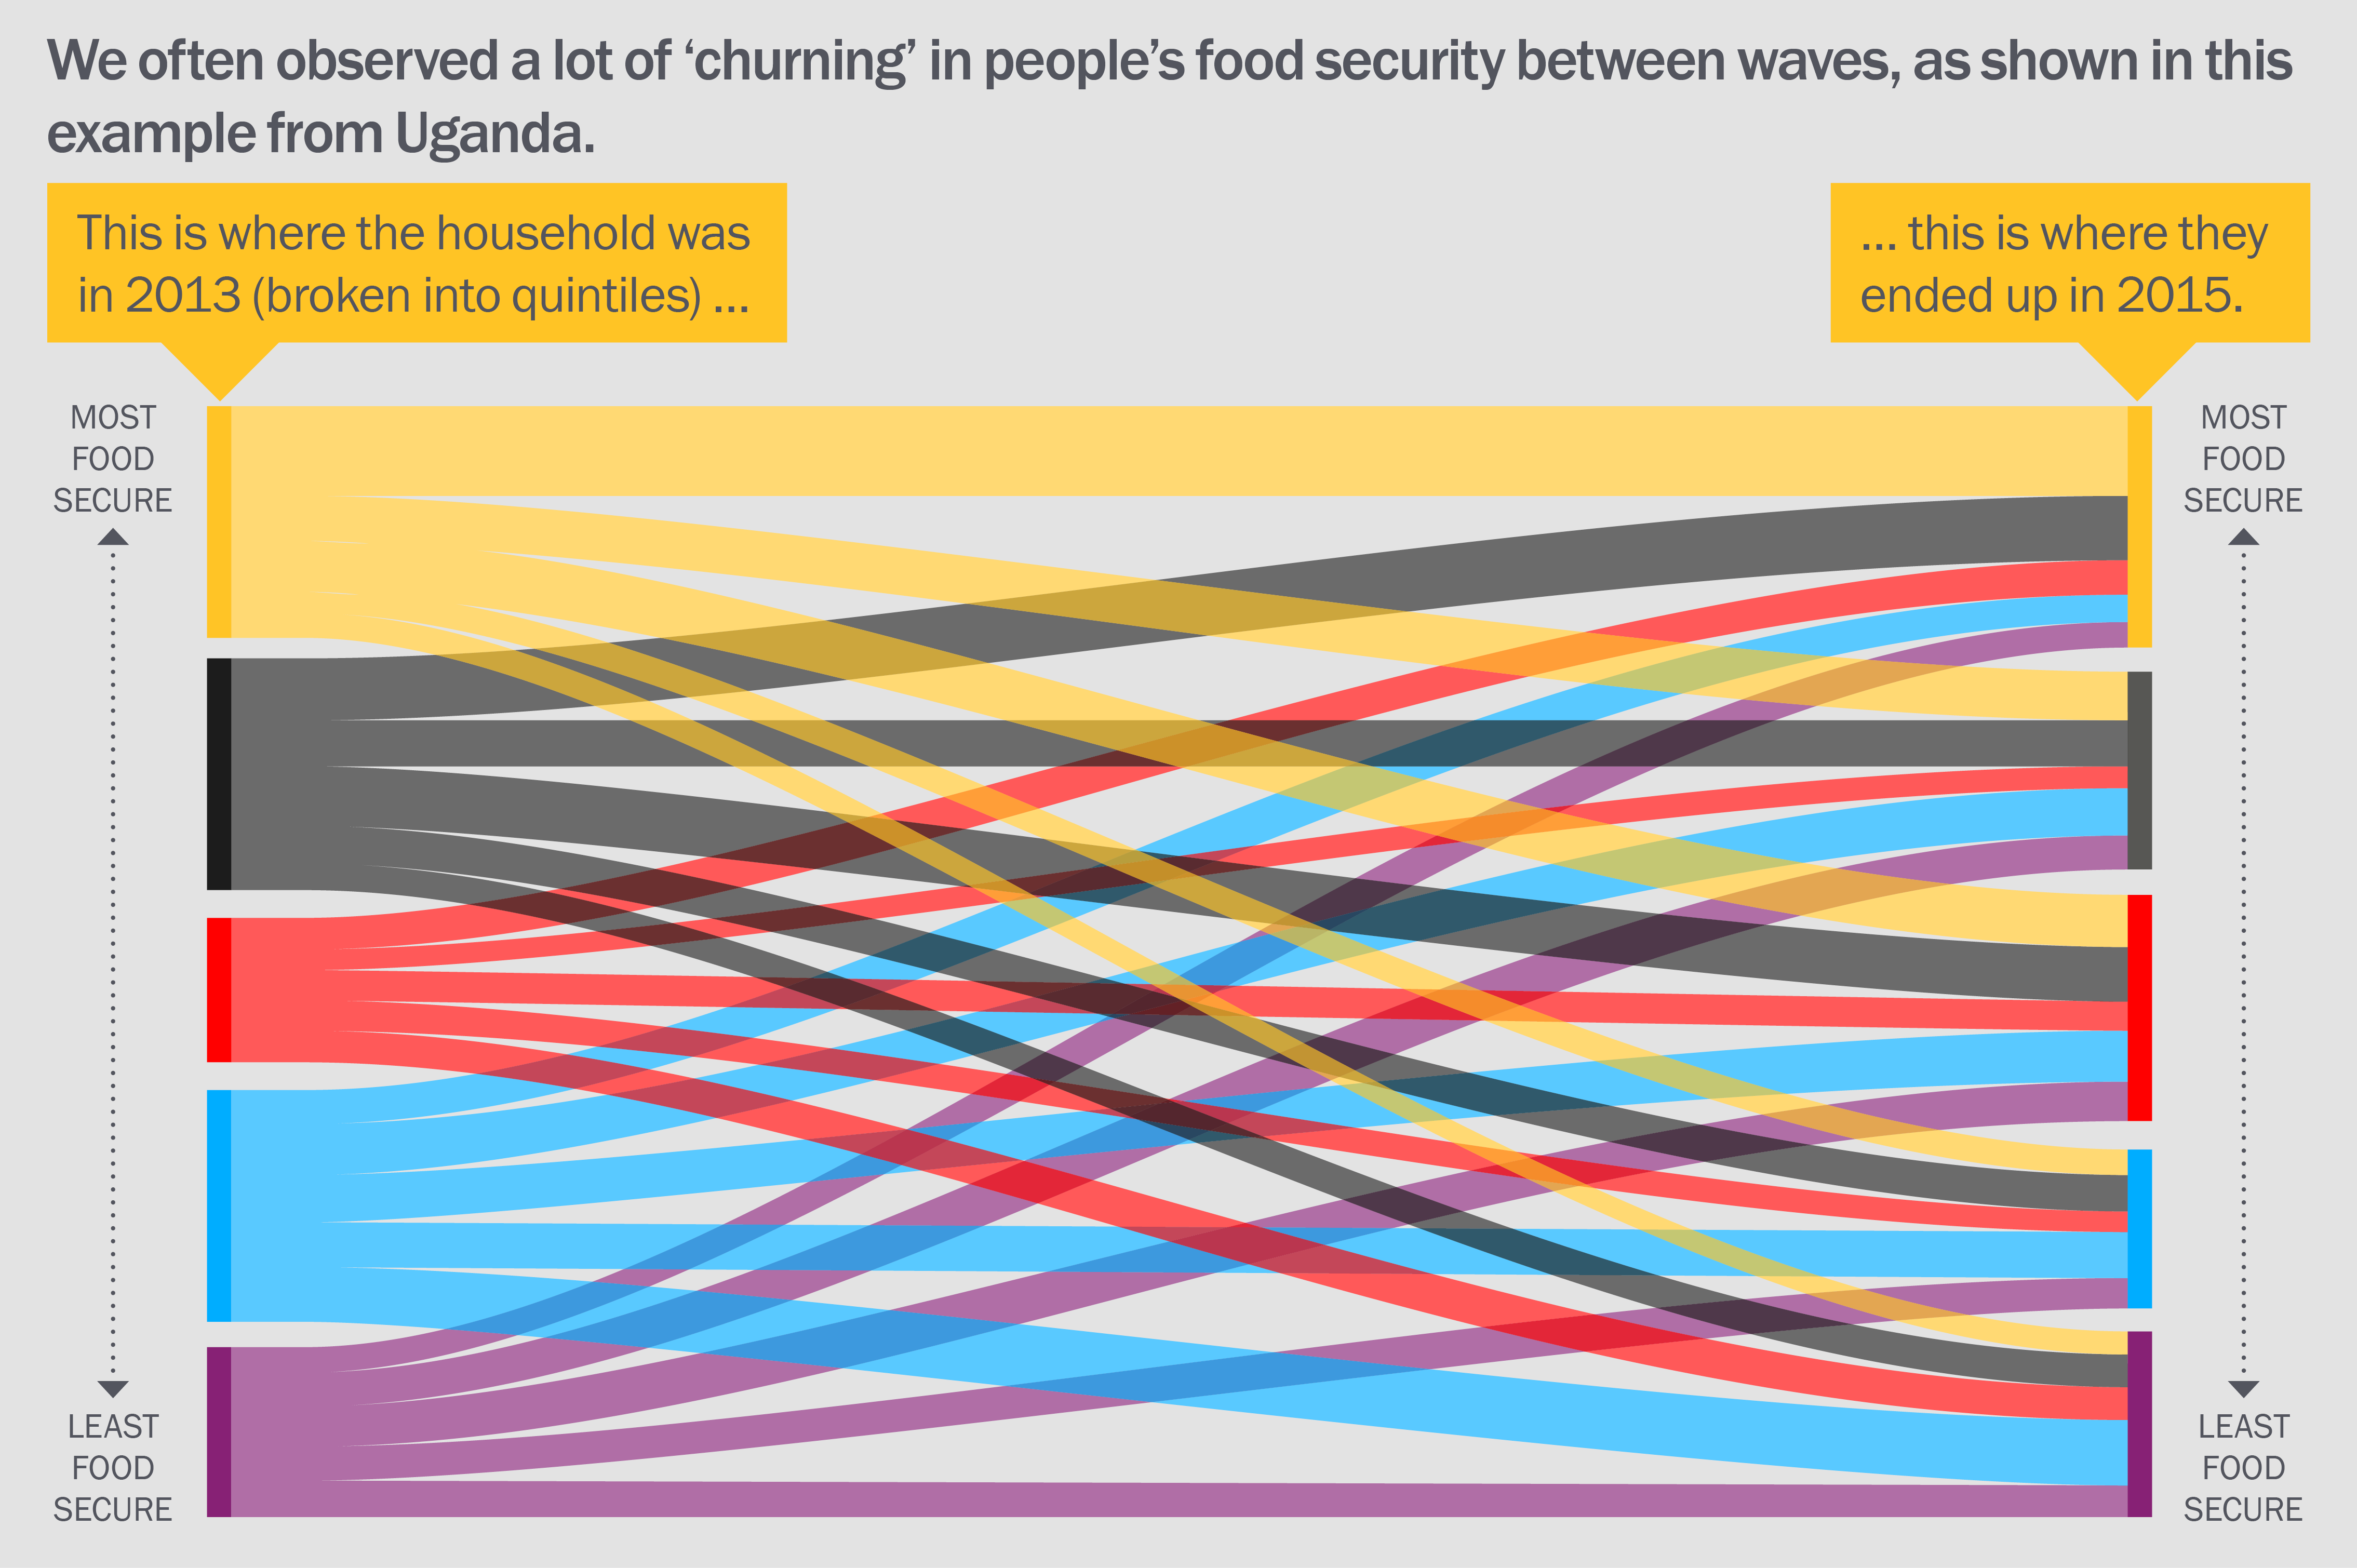 We often observed a lot of 'churning' in people's food security between waves, as shown in this example from Uganda